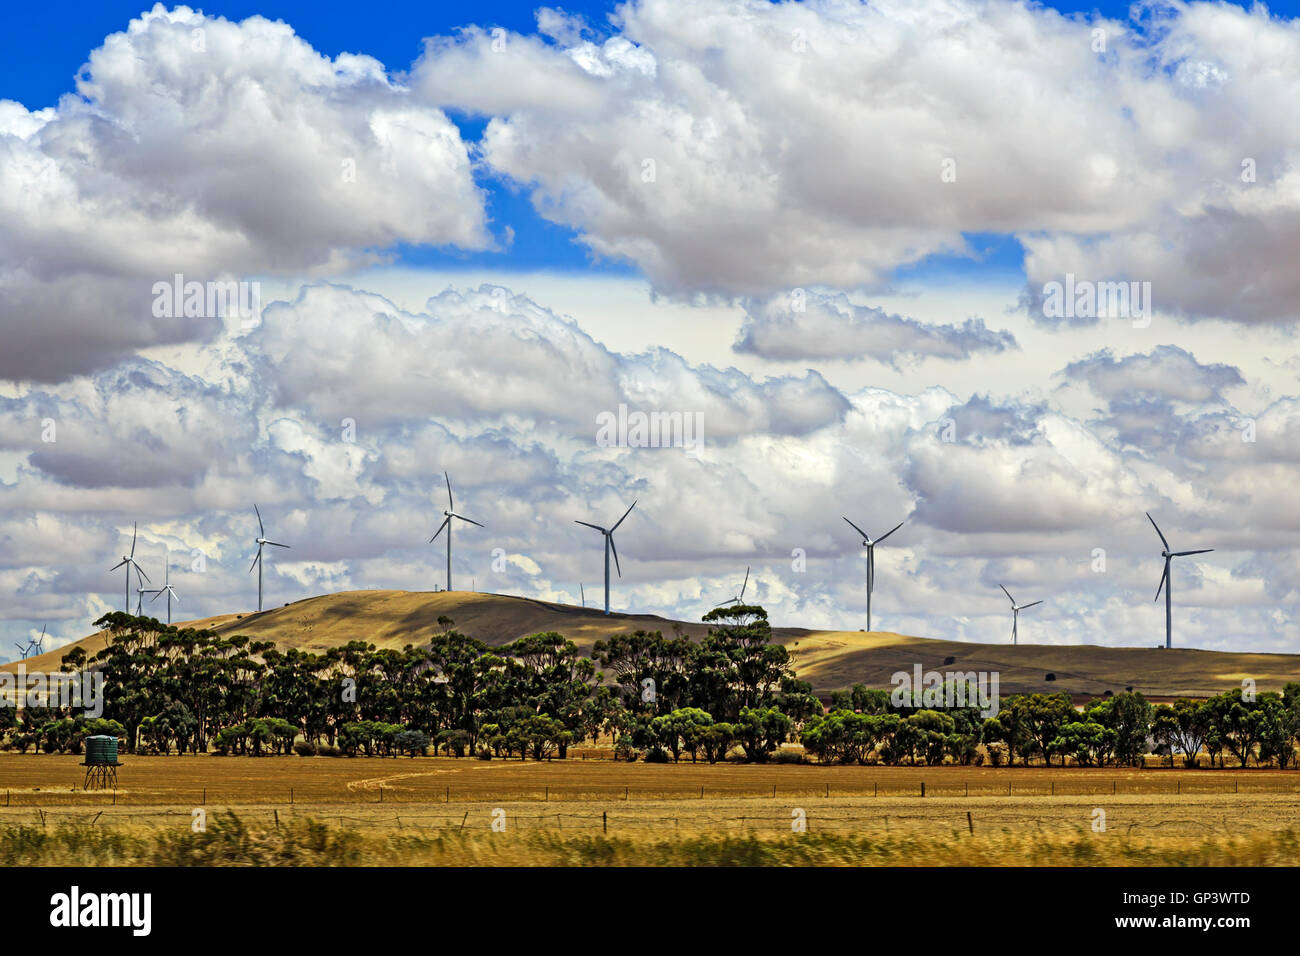 Chain of powerful tall wind turbines on top of hill chain in South Australia behind cultivated agricultural field - Stock Image